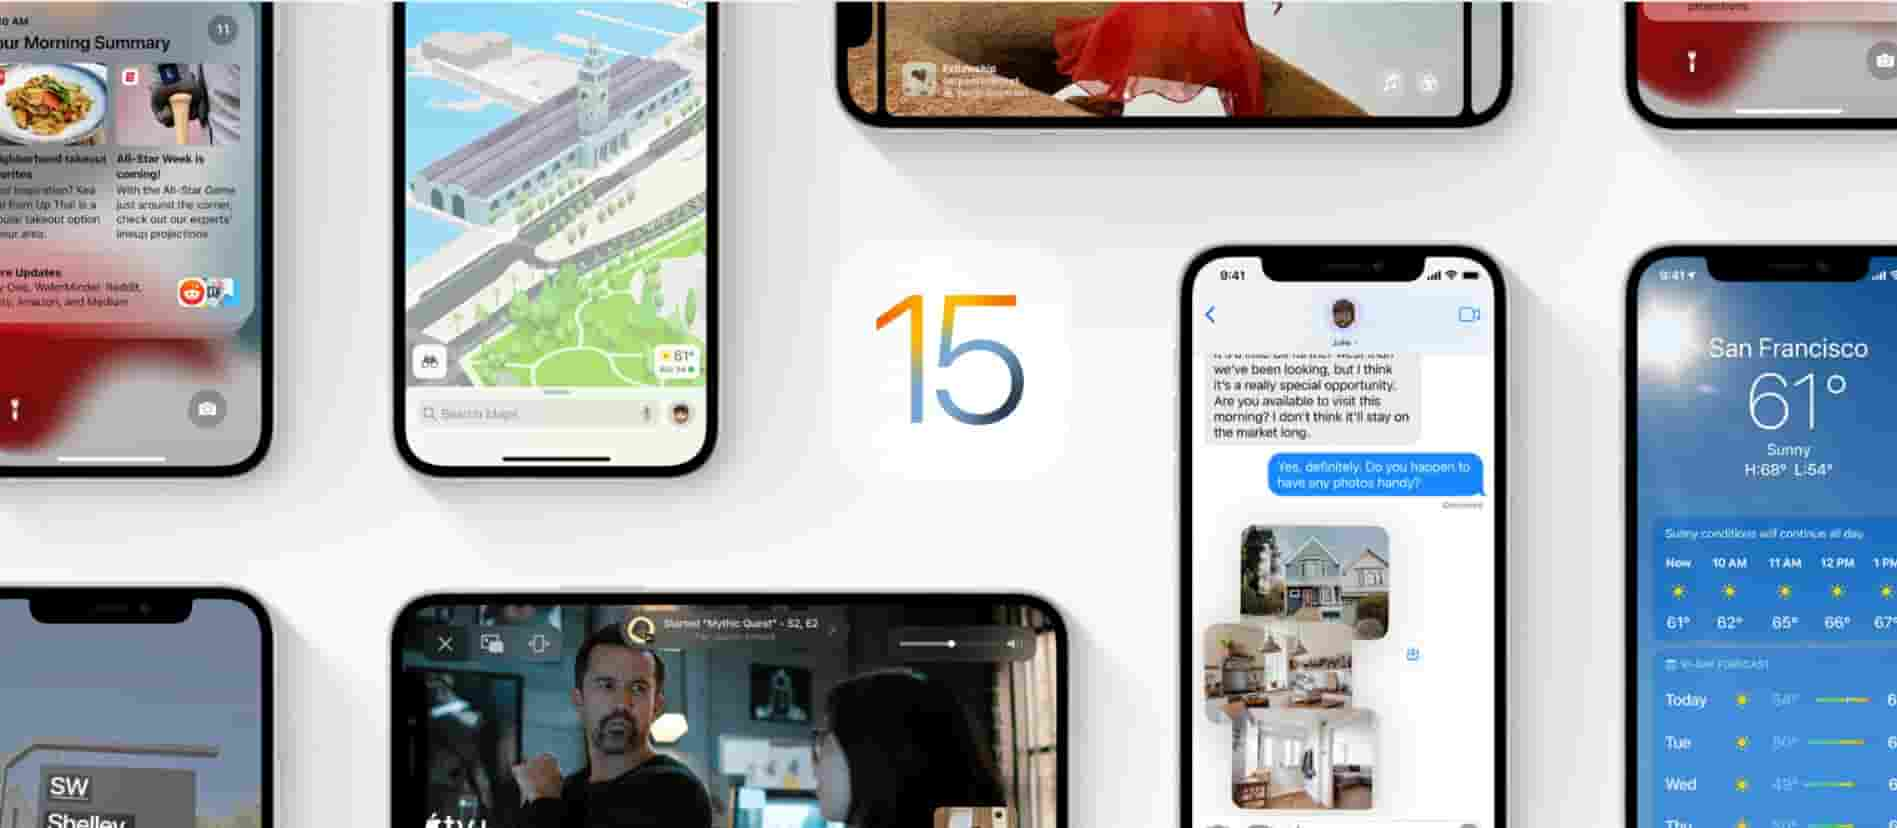 how to download ios 15 beta, how to download ipados 15 beta, download ios 15 beta, how to enroll for ios beta testing, apple, ios 15 beta 7, how to download ios 15 beta on iphone, apple ios 15 update